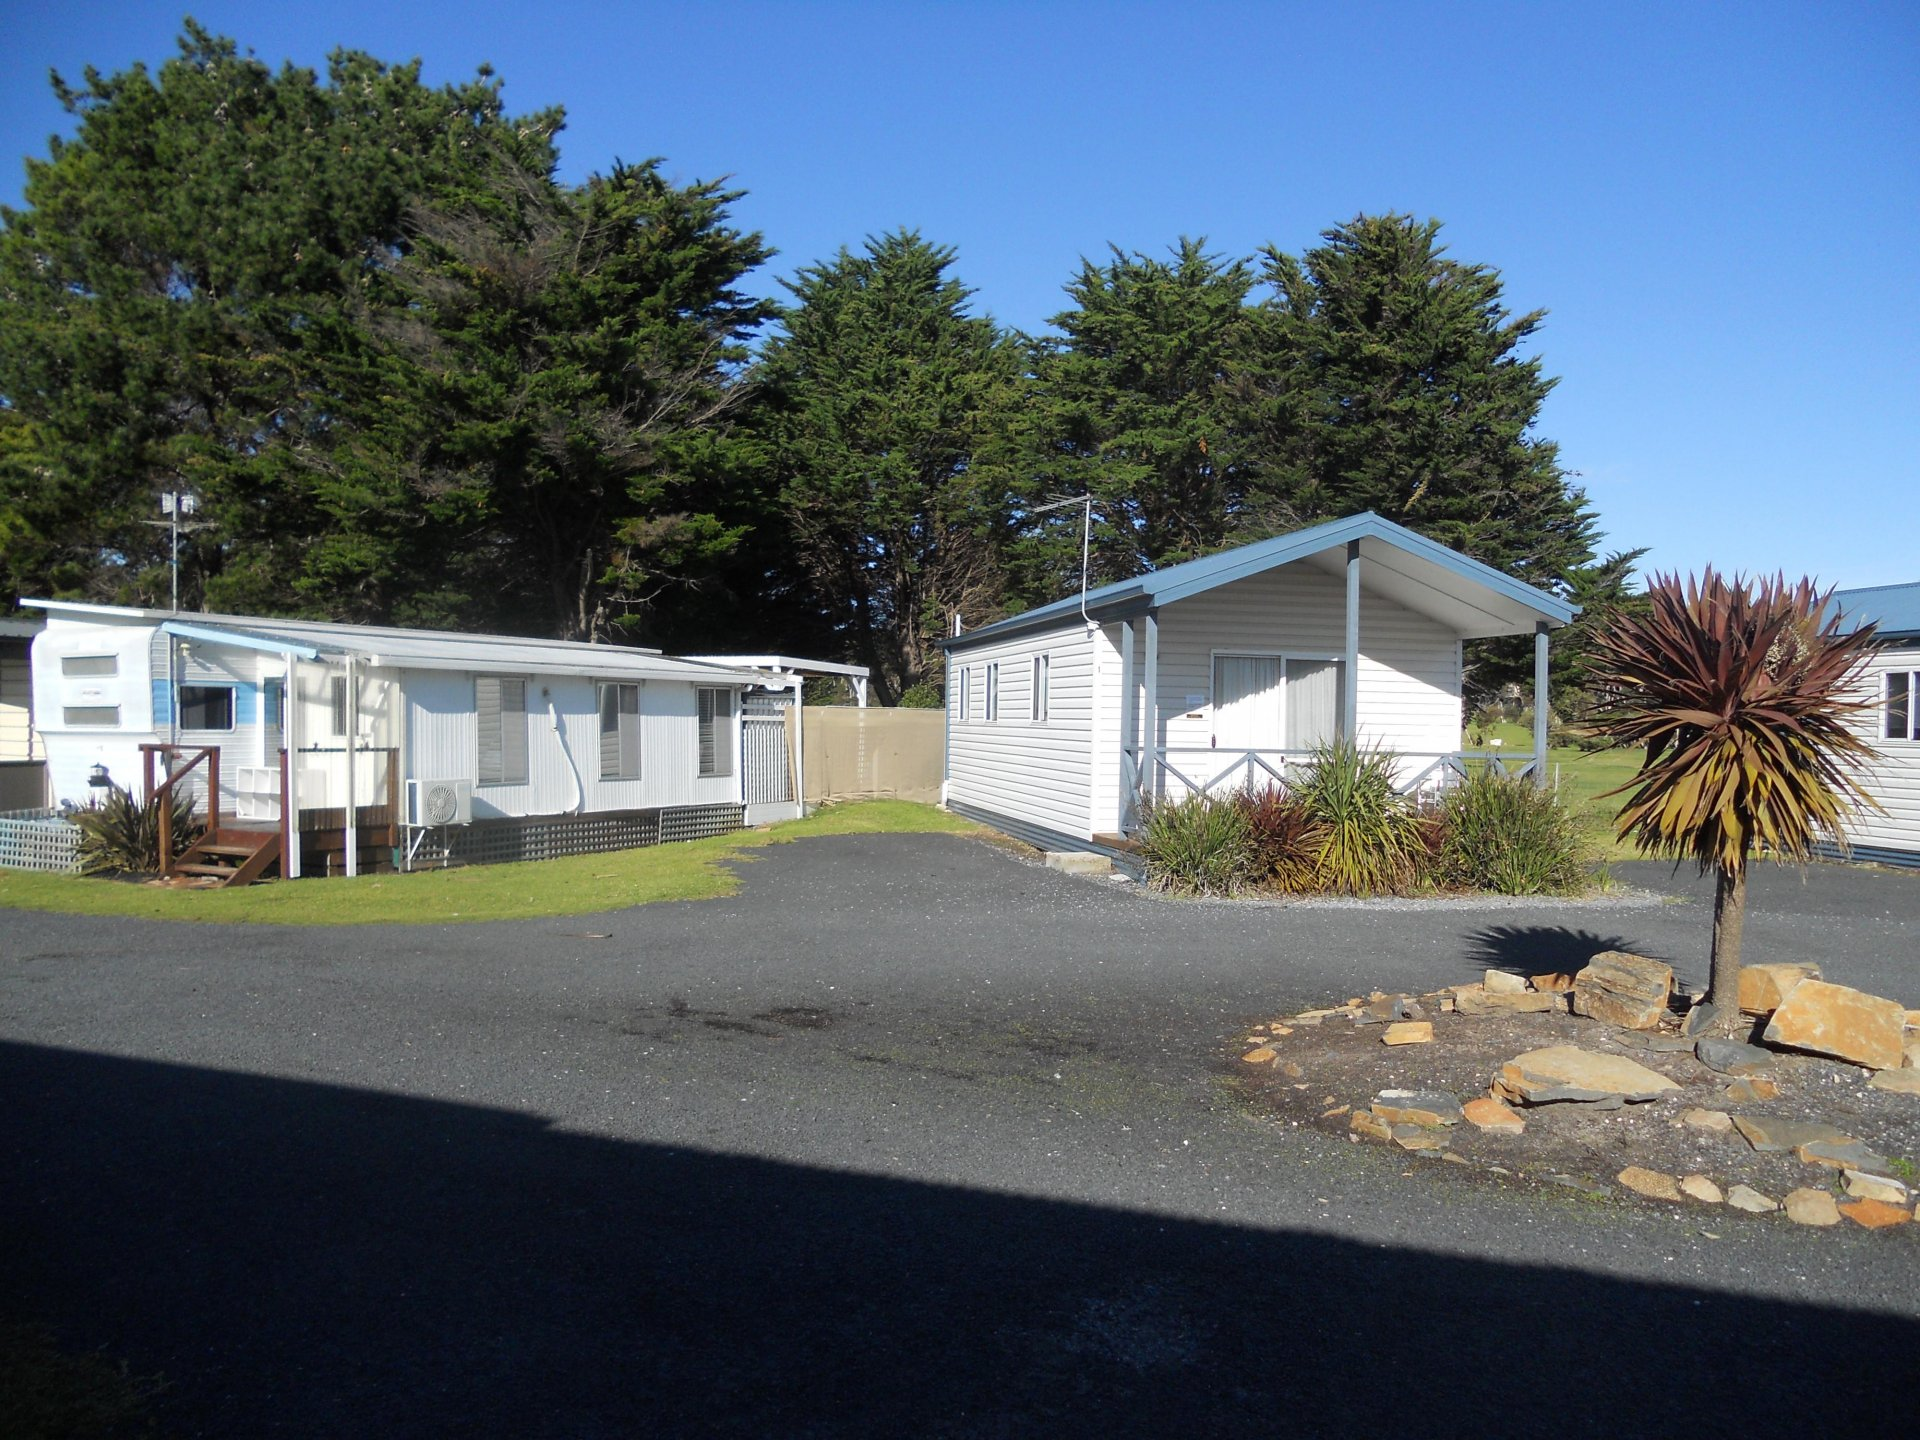 Best Value Tasmanian L/H Caravan Park O/O $495,000,4 f/hold cabins, average 2 yr net $110K pa